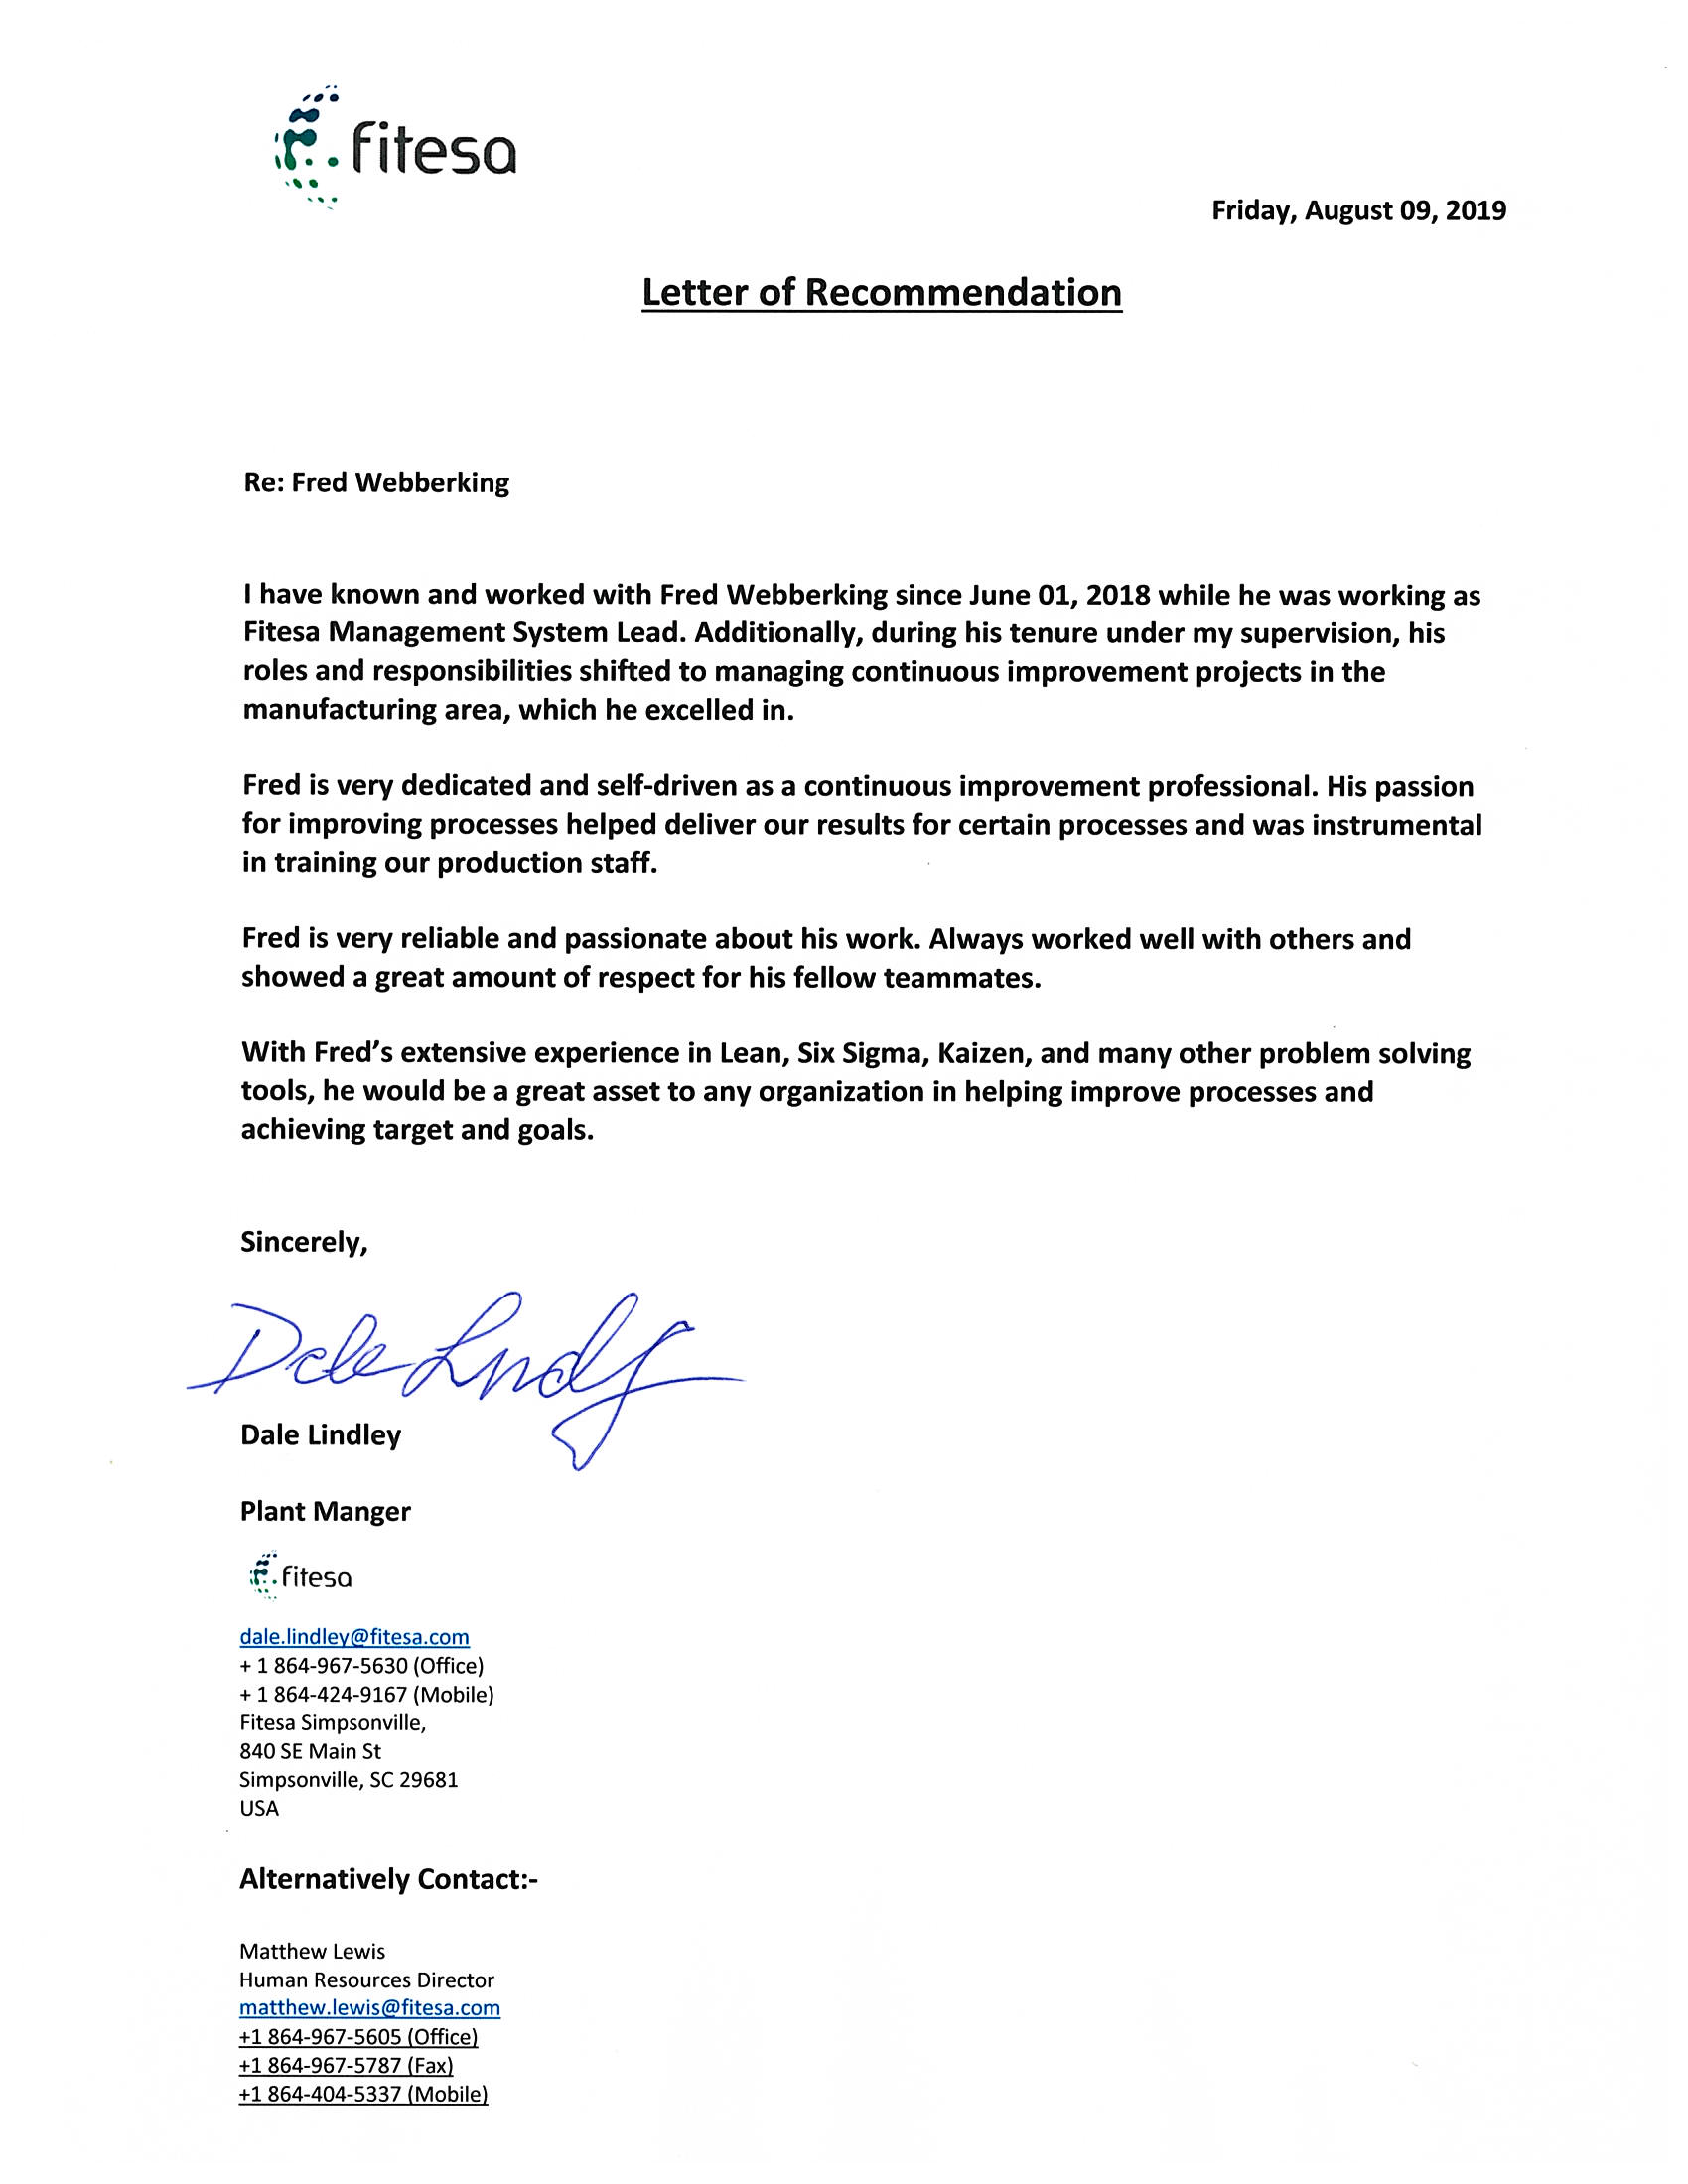 Reference Letter - Fitesa - Dale Lindley